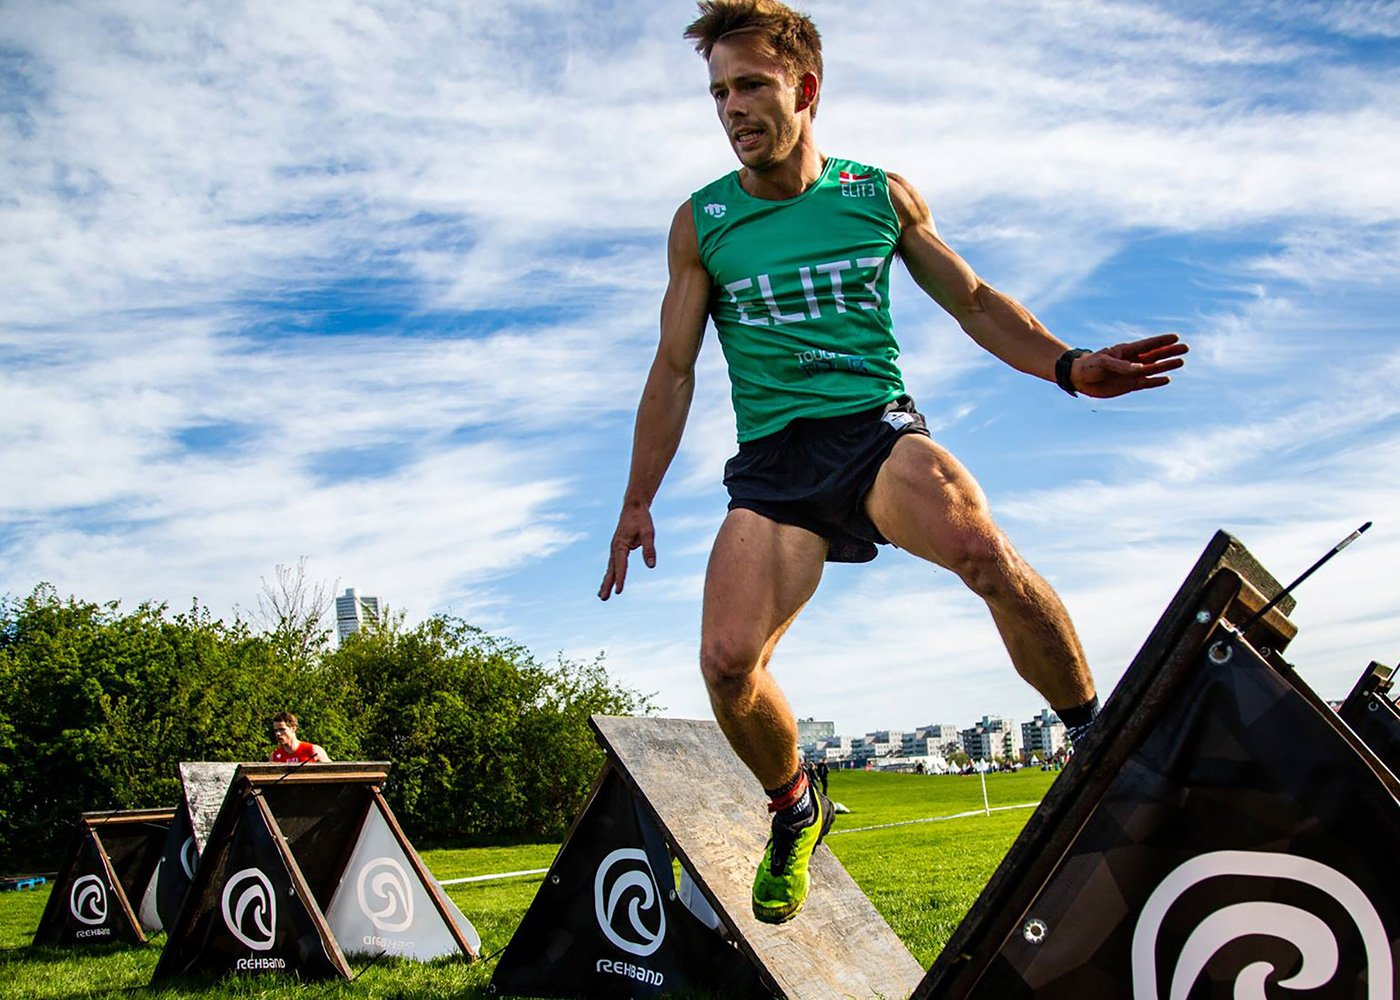 LEON KOFOED: OCR ATHLETE